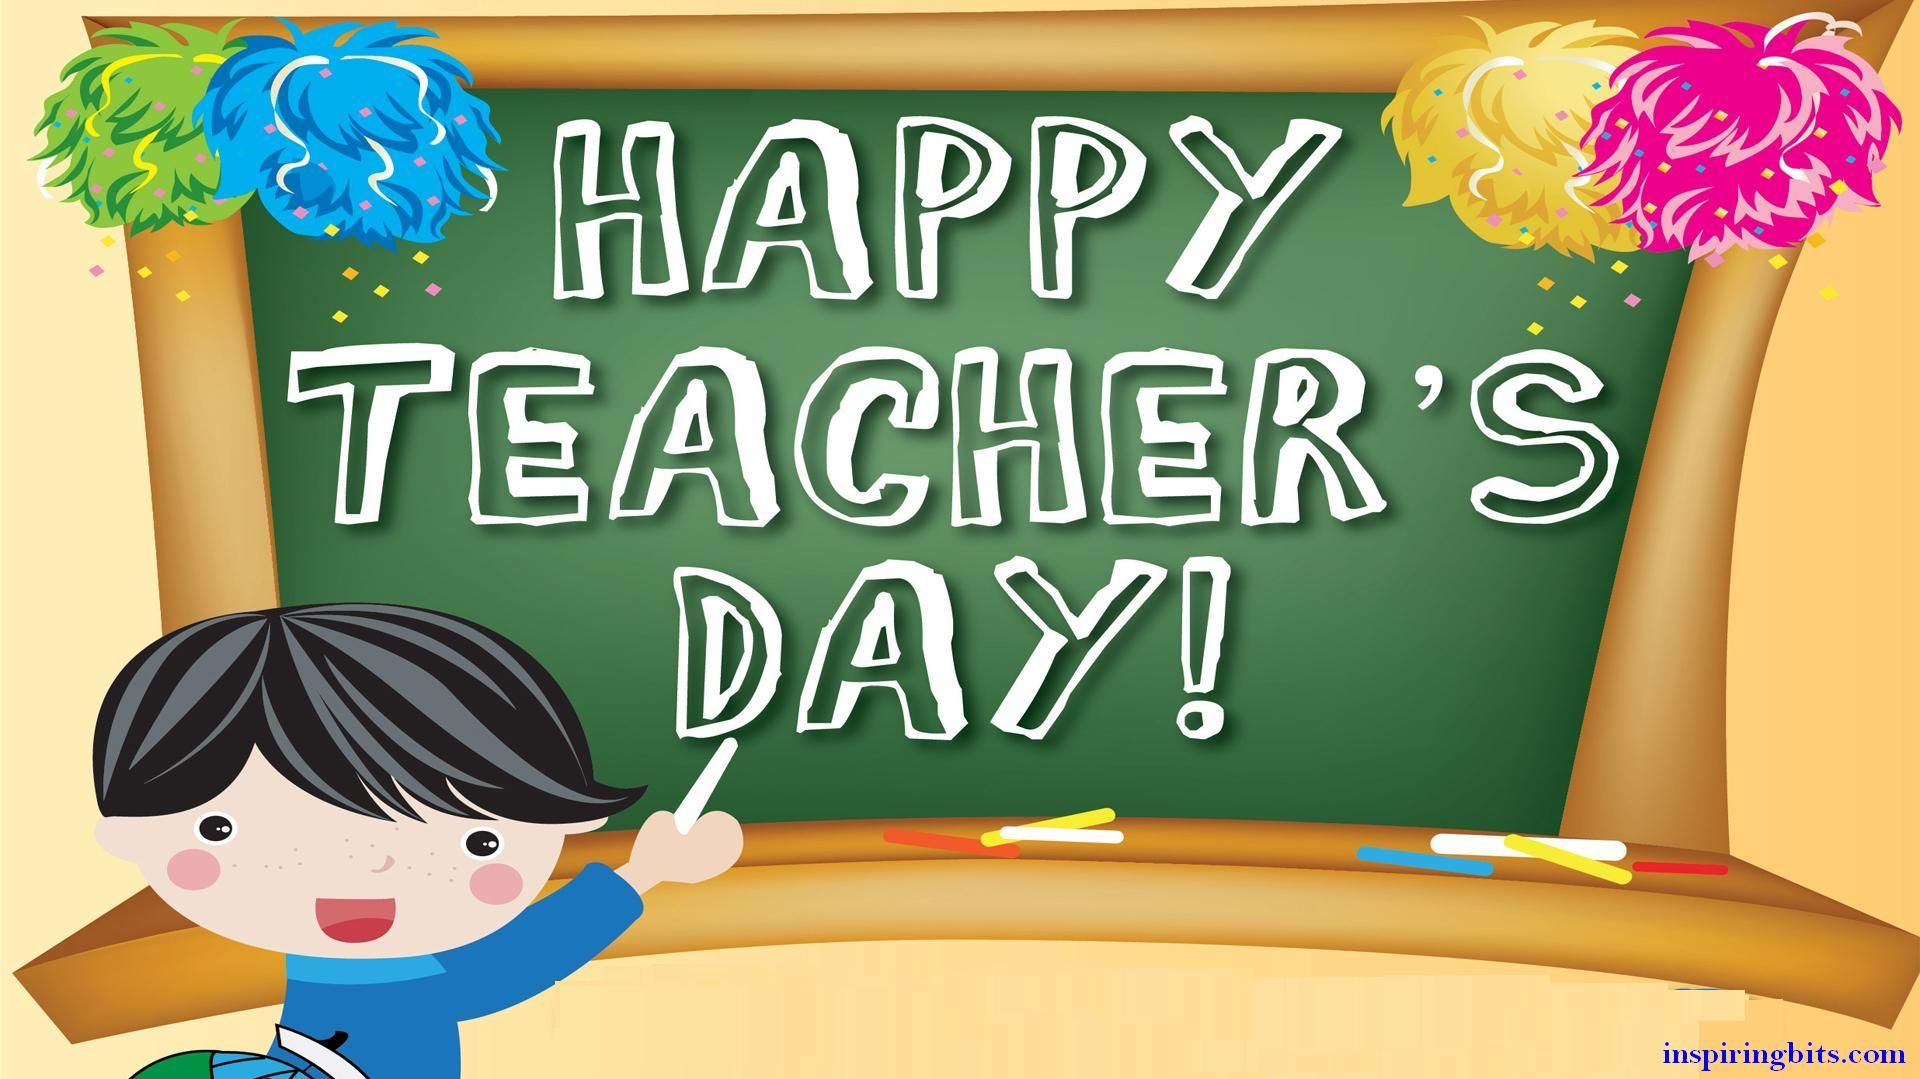 Toboc Deals Wishes Everyone Happy Teacher S Day Do Share Your Best Student Teacher Mem Teacher Favorite Things Happy Teachers Day Teachers Day Celebration